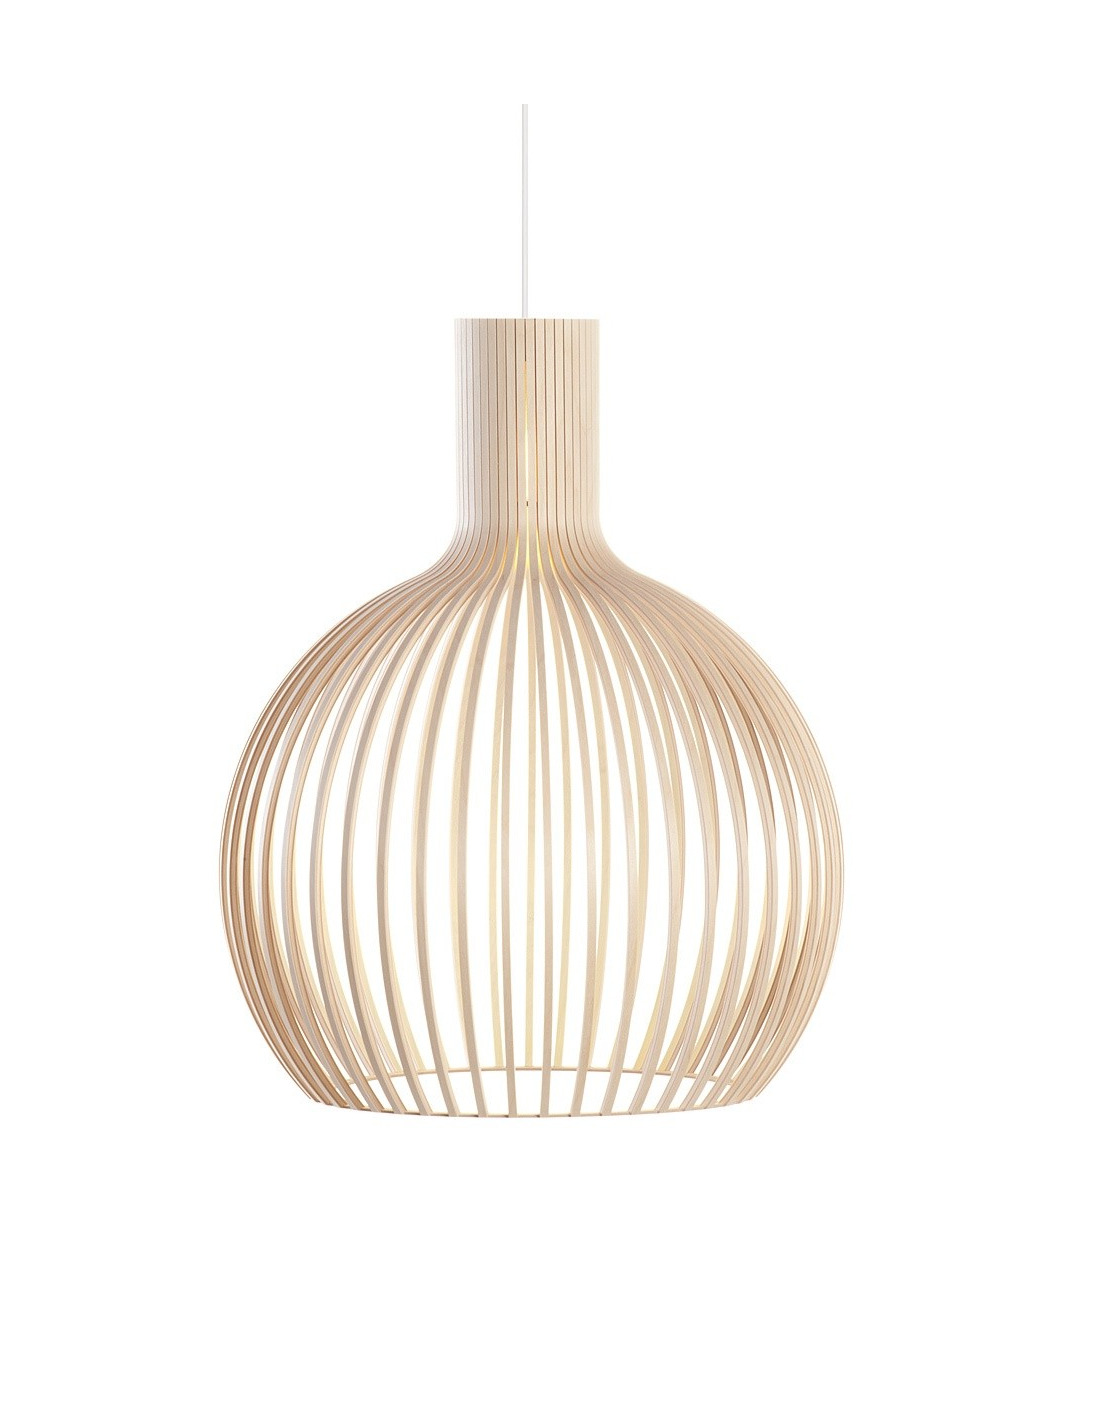 Suspension Au Design Scandinave Octo 4240 En Bois Naturel